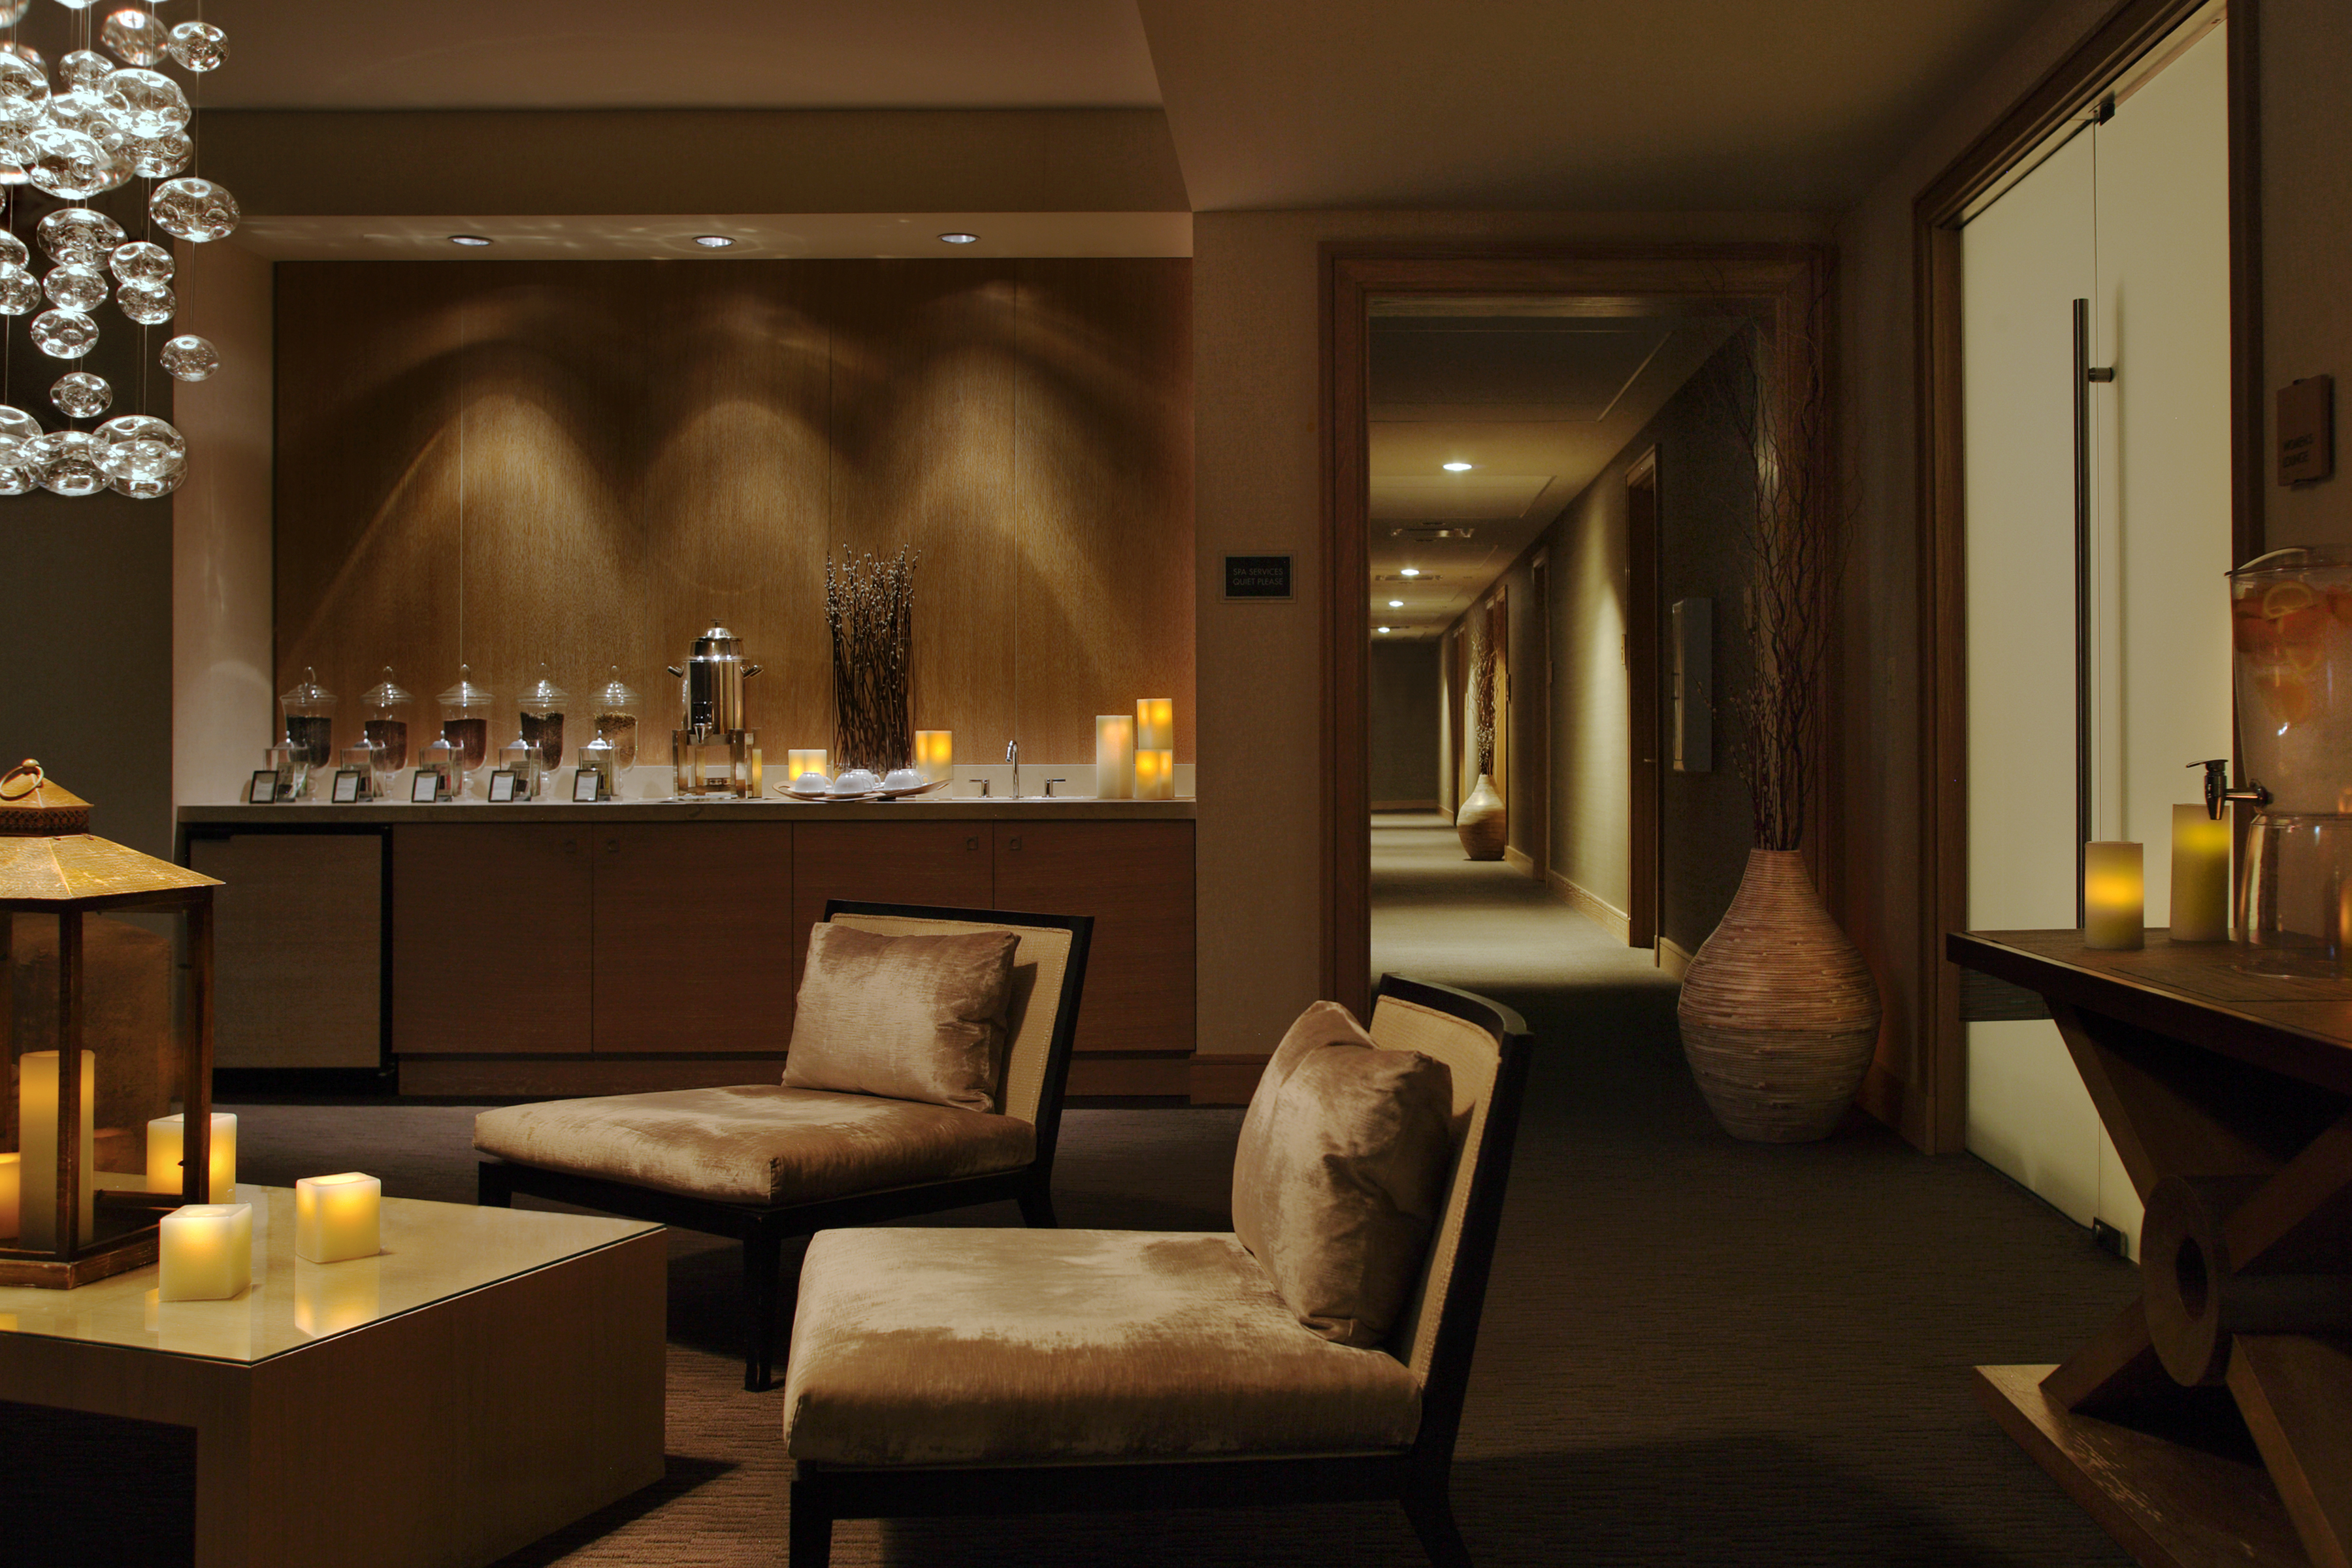 Trump-Chicago-Spa-Relaxation-Lounge